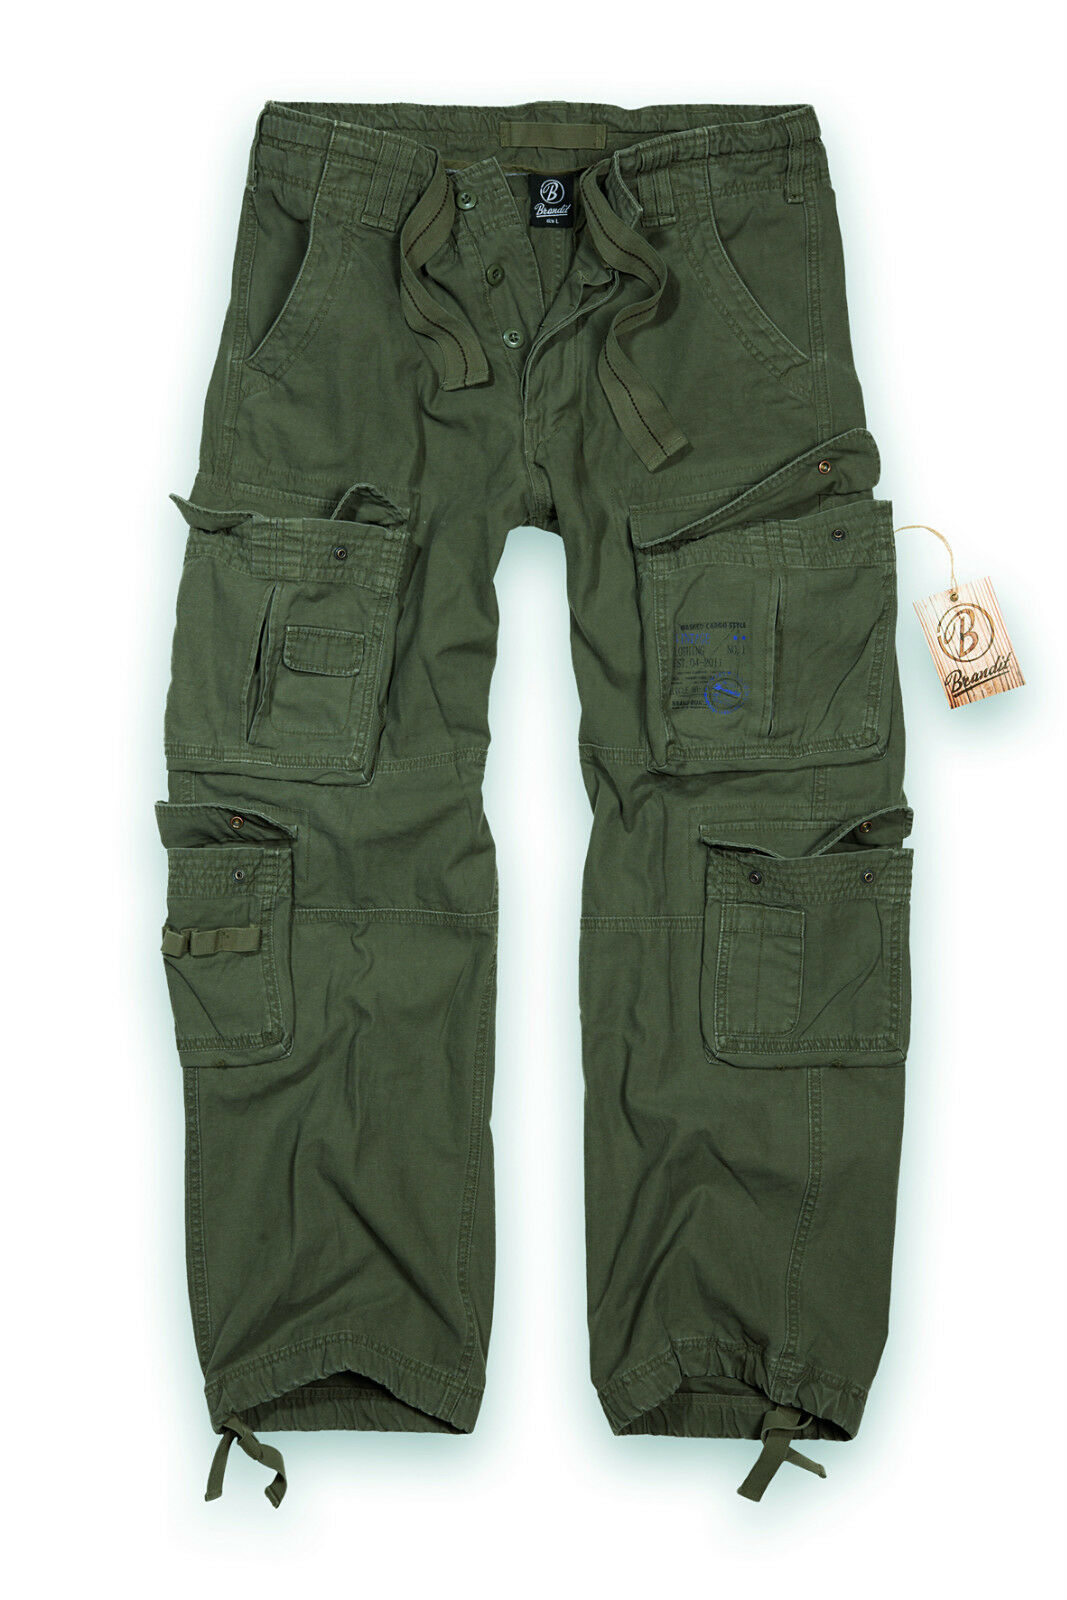 BRANDIT PURE VINTAGE COMBAT TROUSERS MENS ARMY CARGO PANTS WORKWEAR  OLIVE